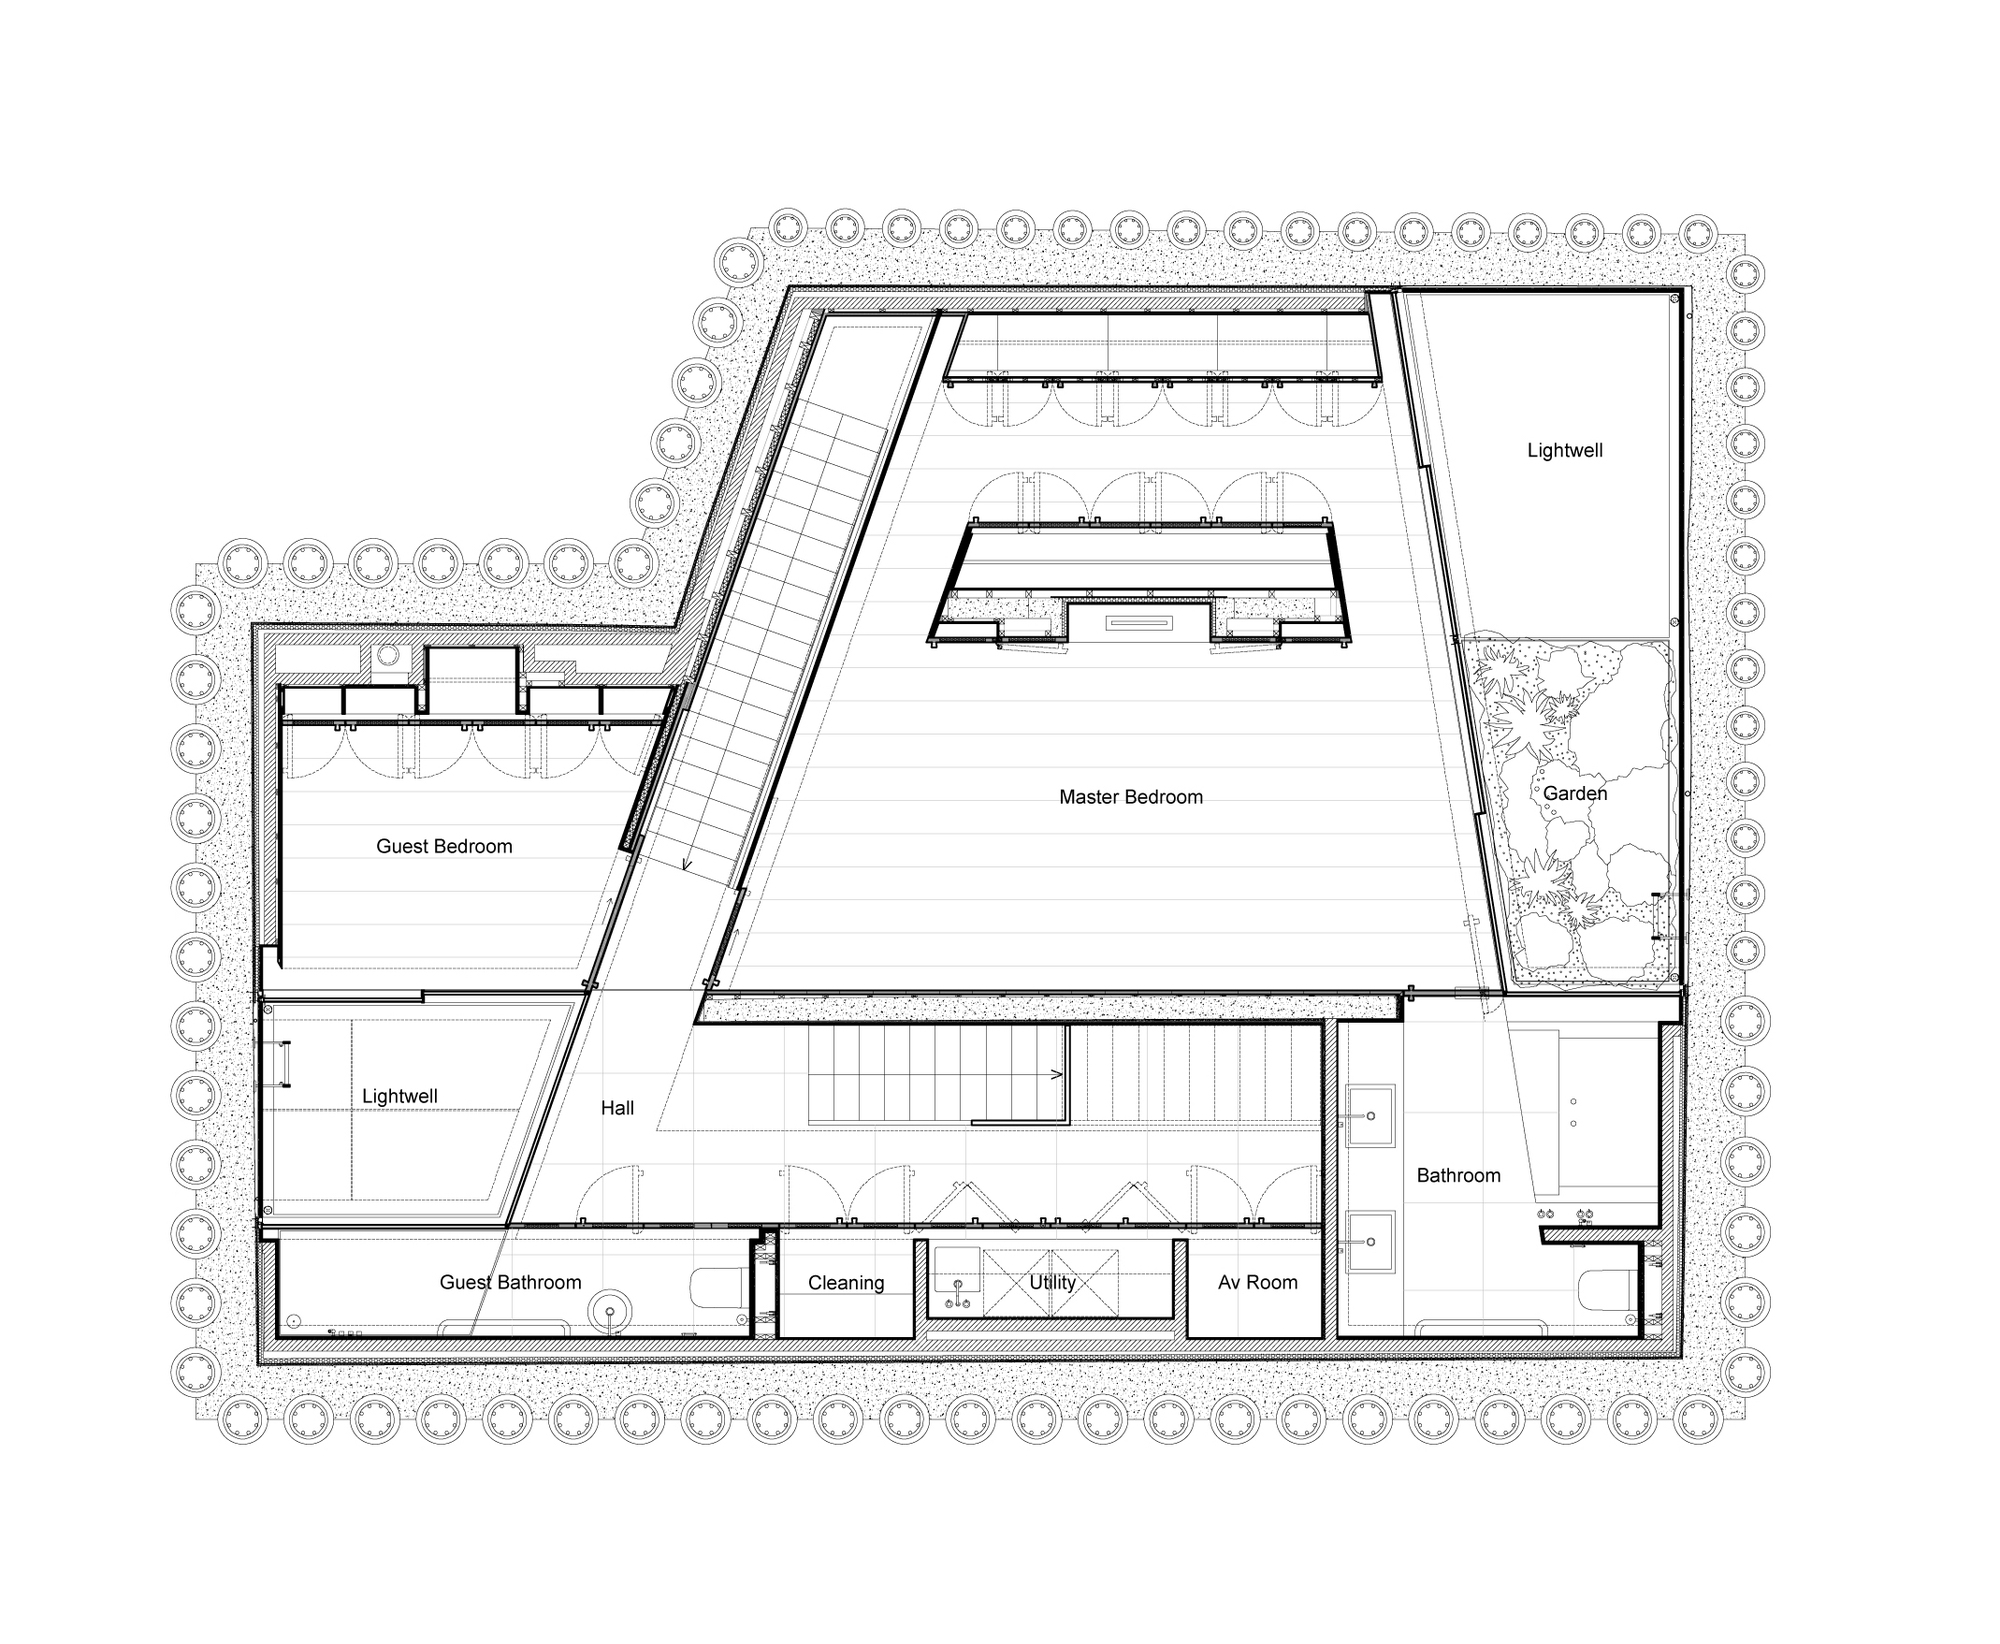 41_Basement_Floor_Plan_with_text.jpg